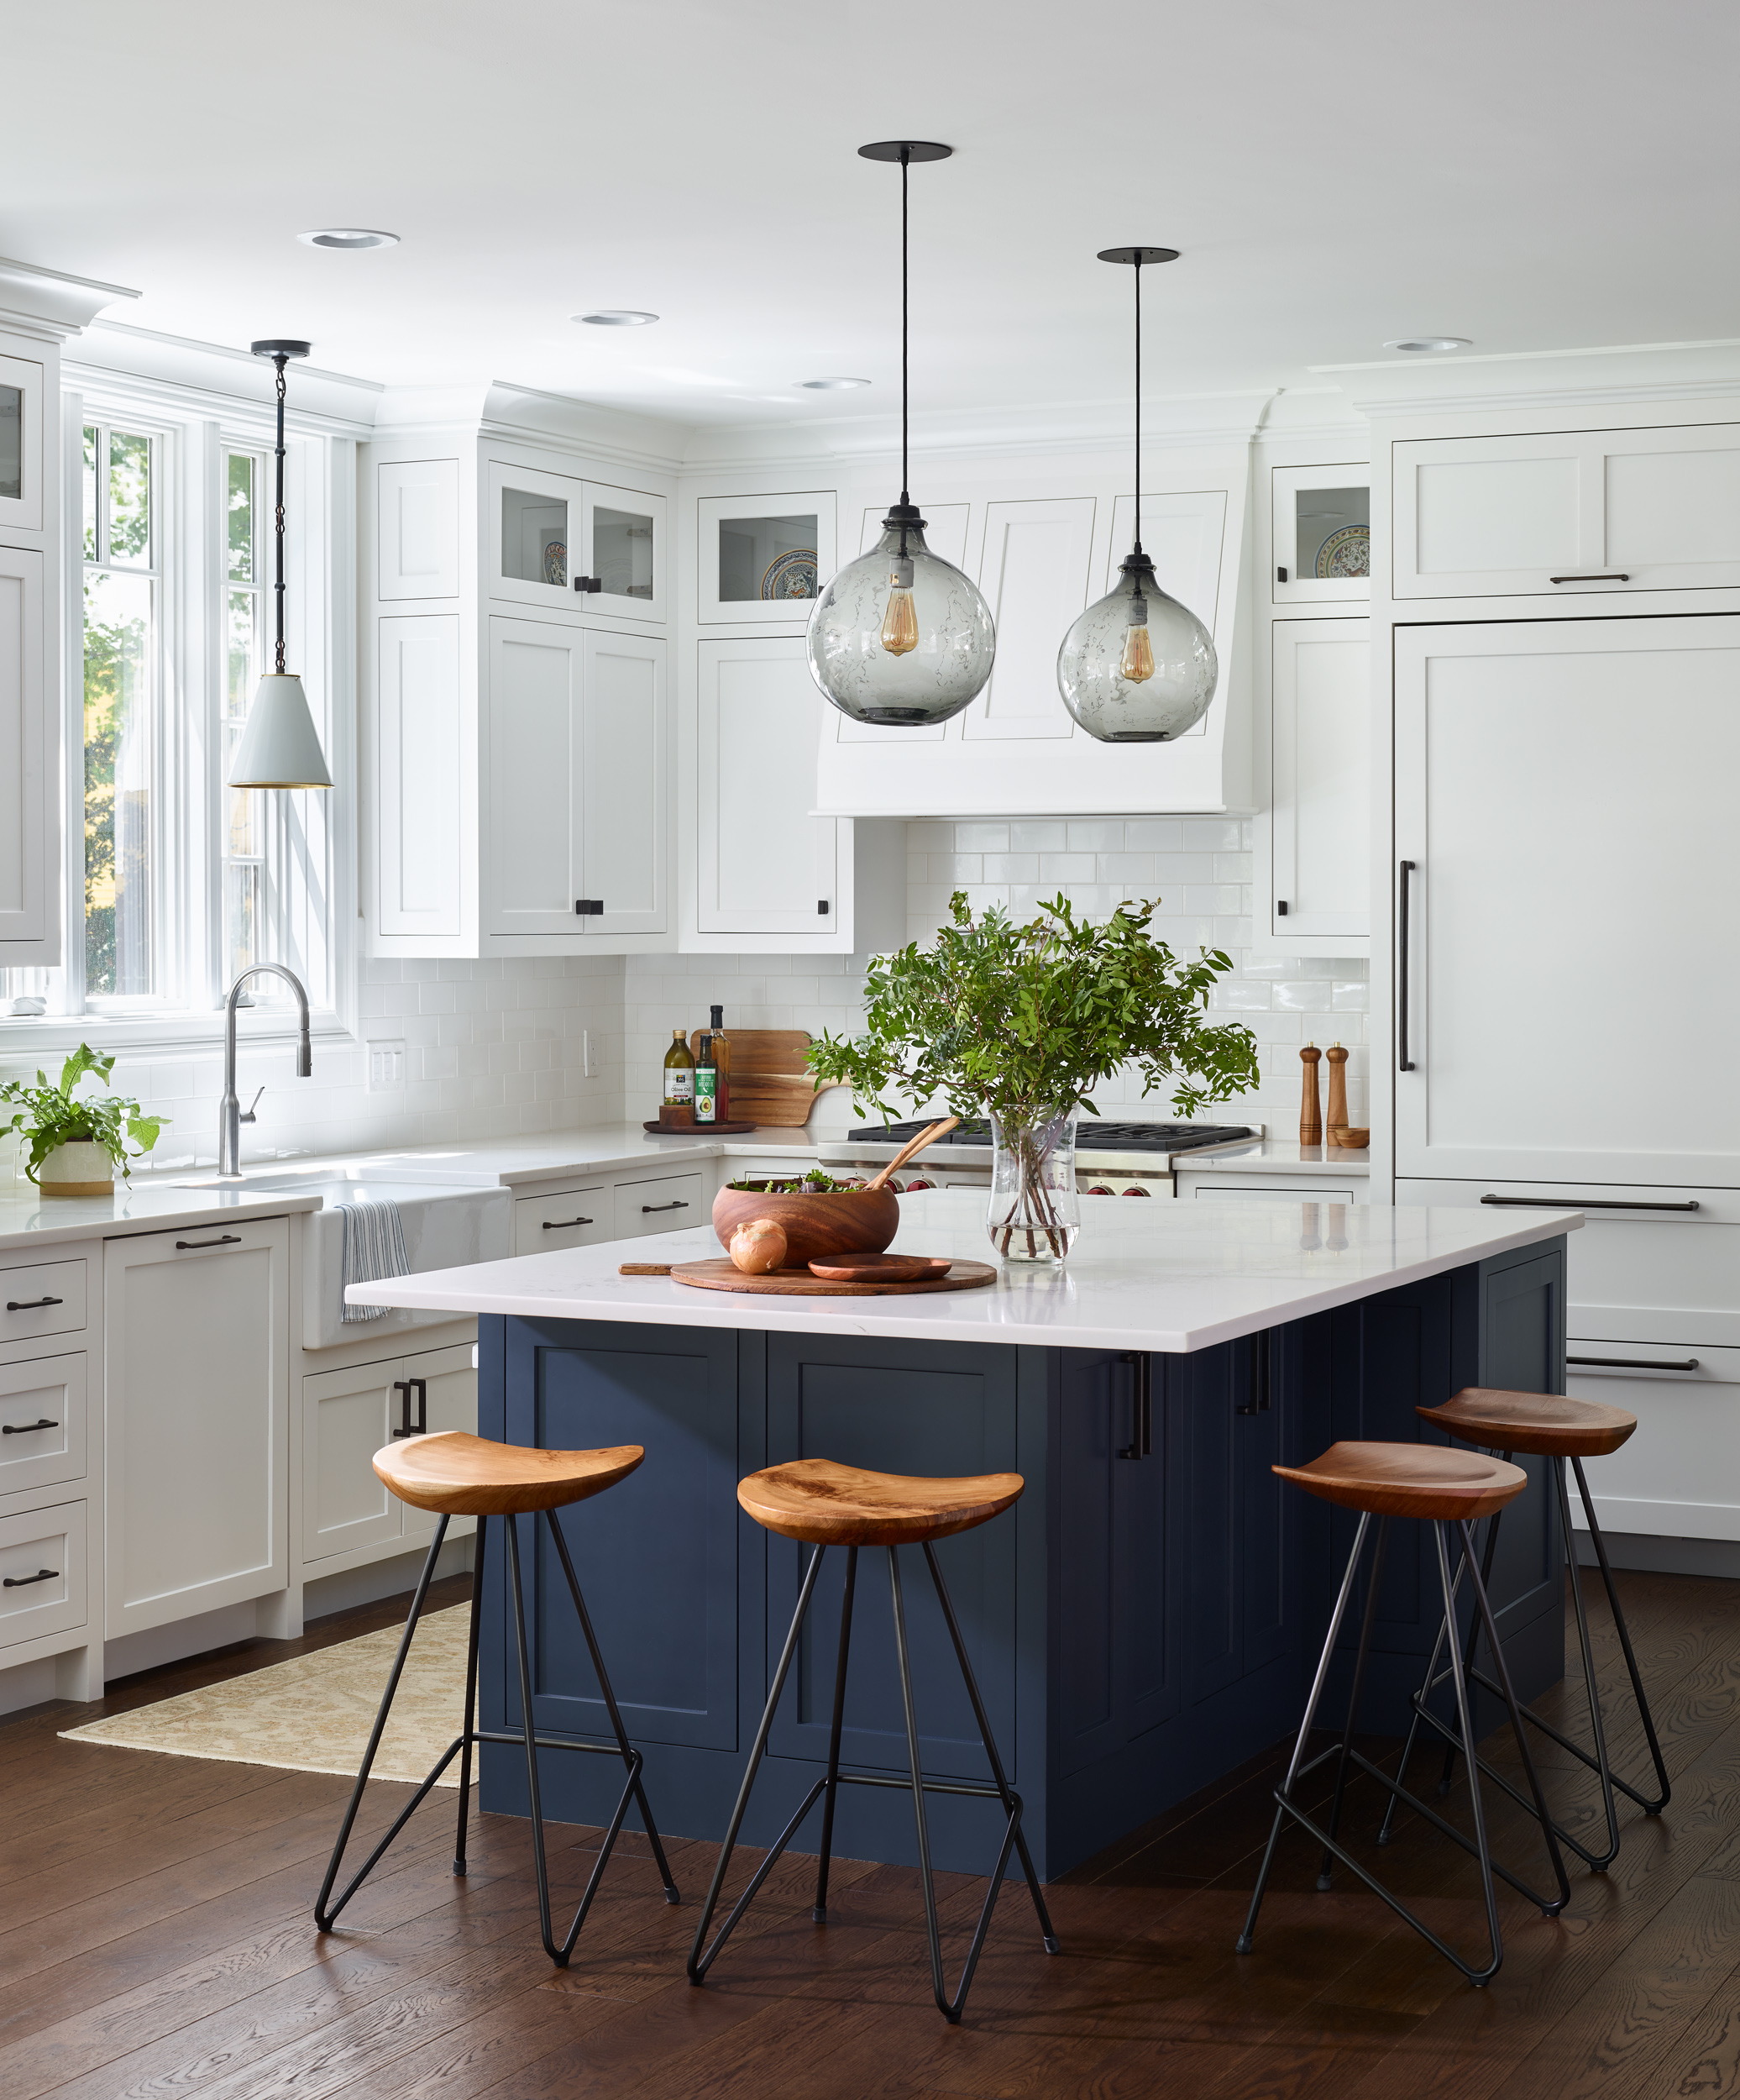 PinneyDesigns_UpweyWellesley_KitchenOverall_Final_SMALL.jpg